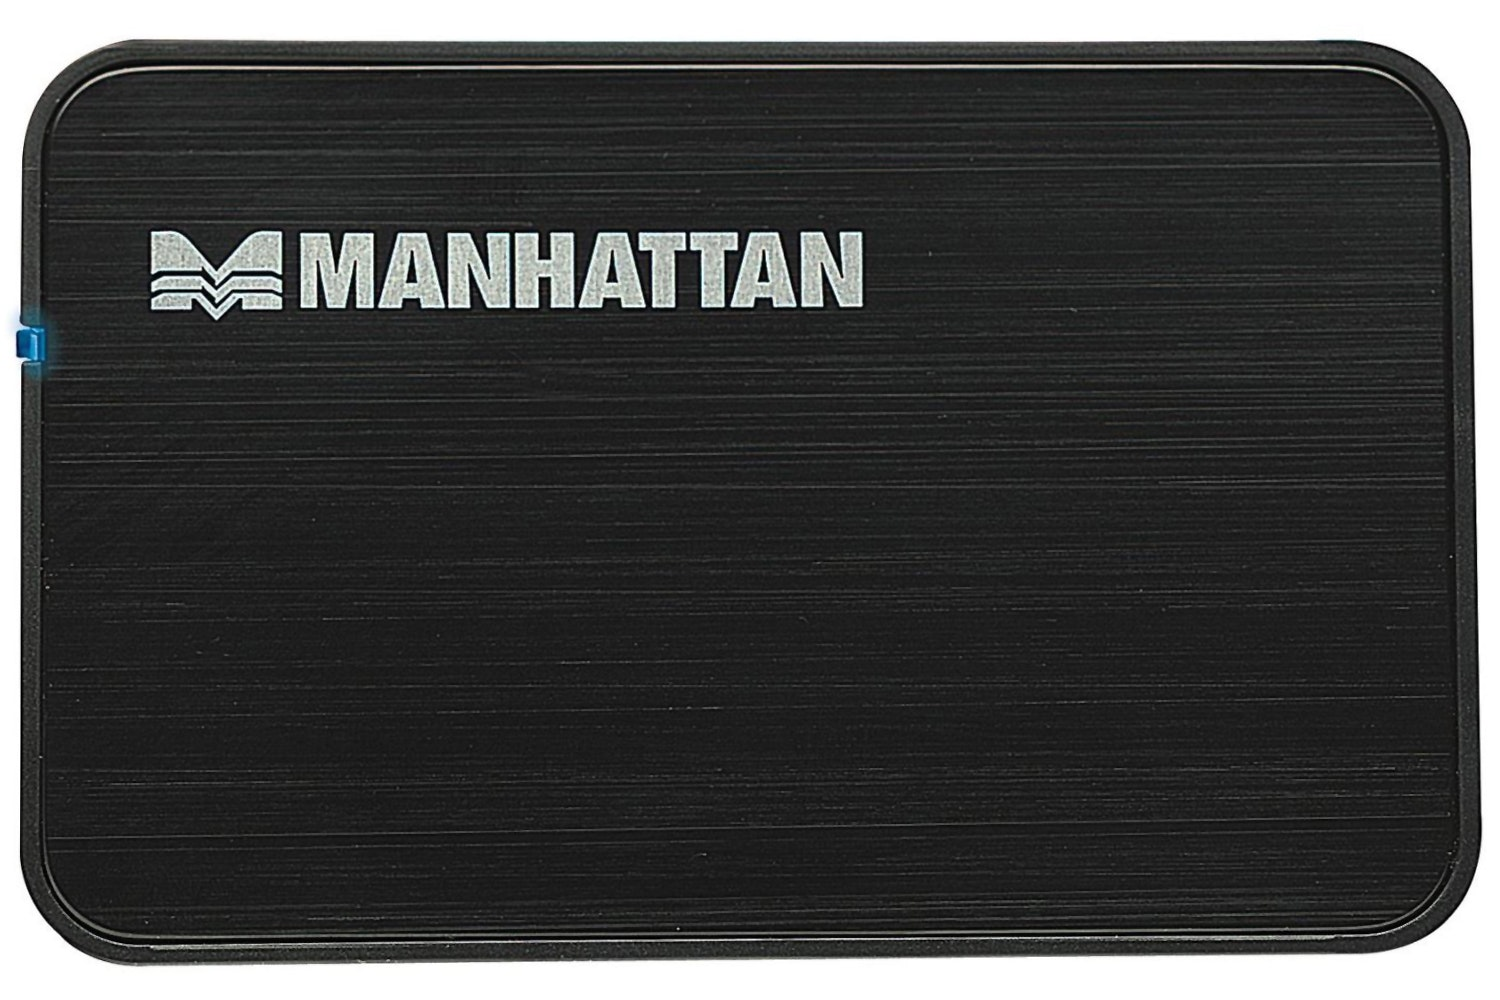 "Manhattan 2.5"" SATA Drive Enclosure 